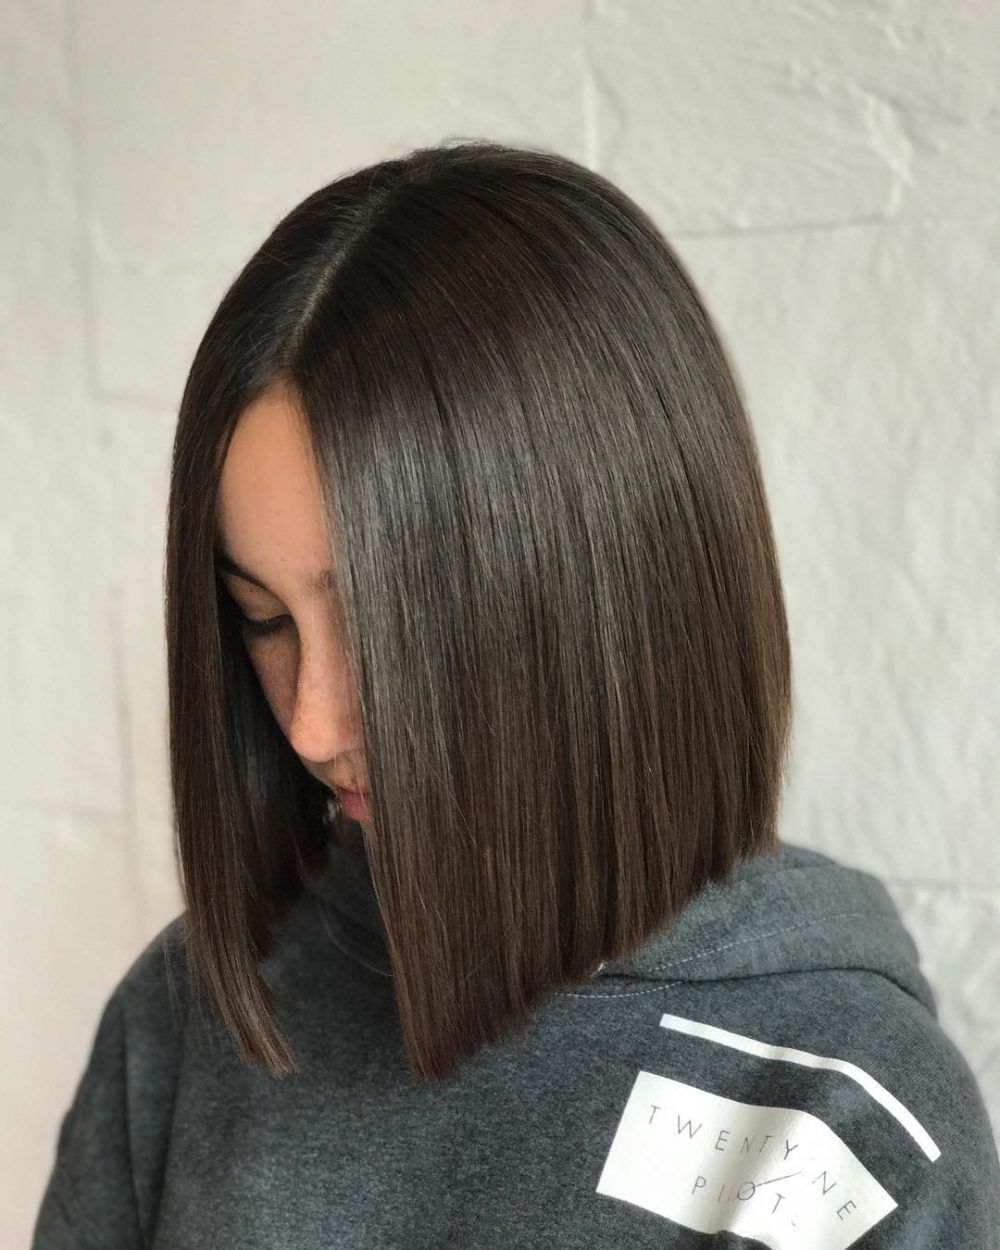 24 flattering middle part hairstyles in 2019 | middle part